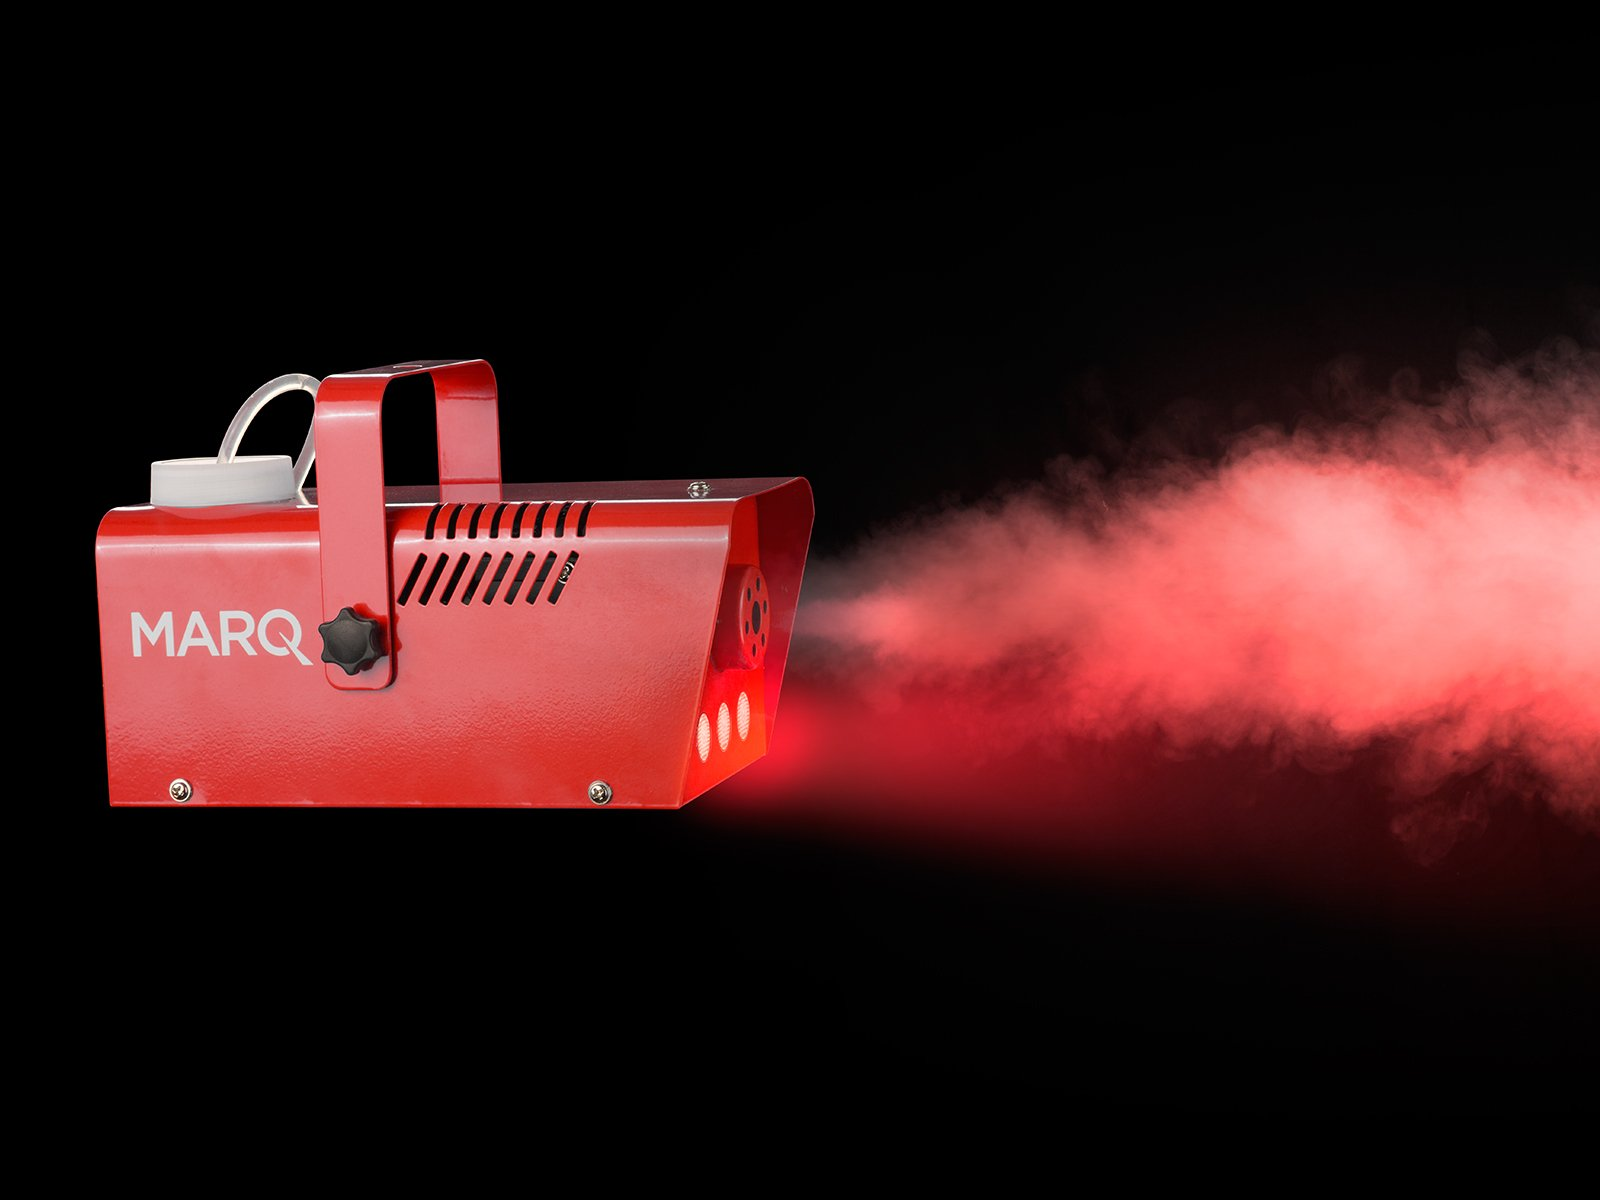 MARQ Fog 400 LED | 400W Water-Based Special Effects Fog Machine with Red-Color LED Lights (Red) by MARQ (Image #4)